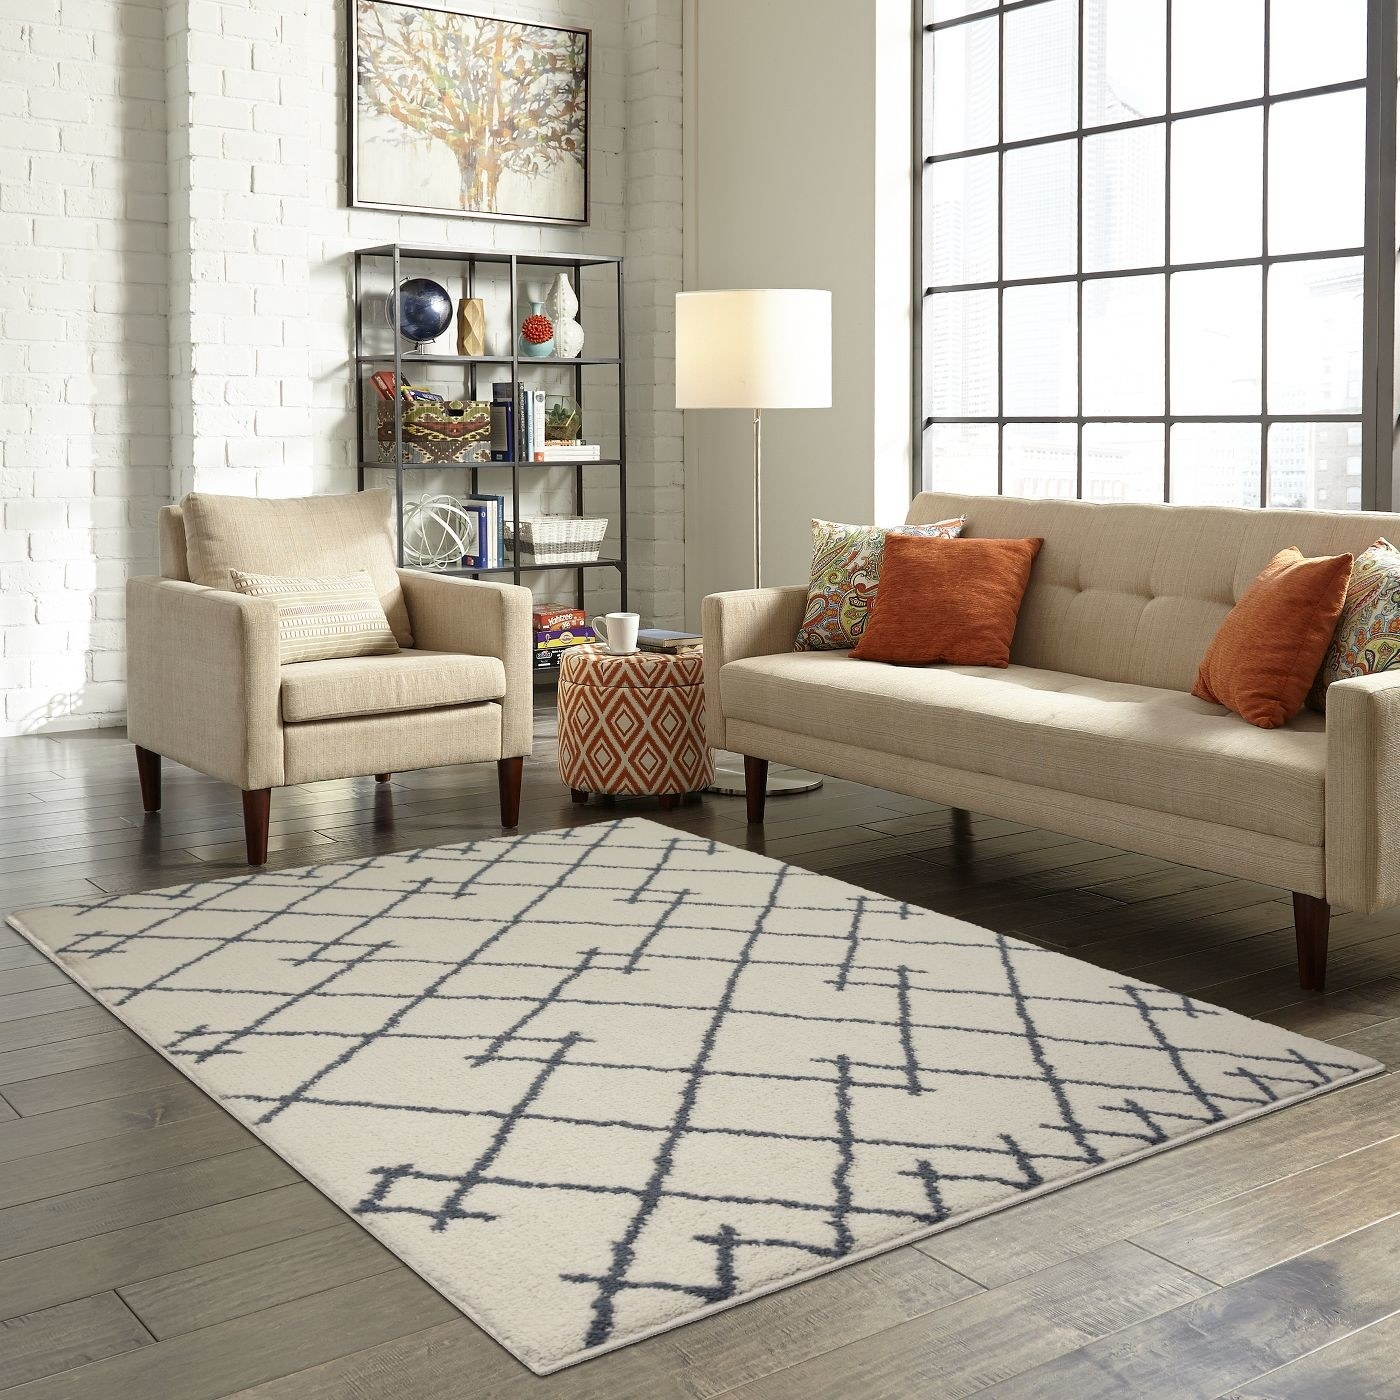 A cream geometric pattern rug